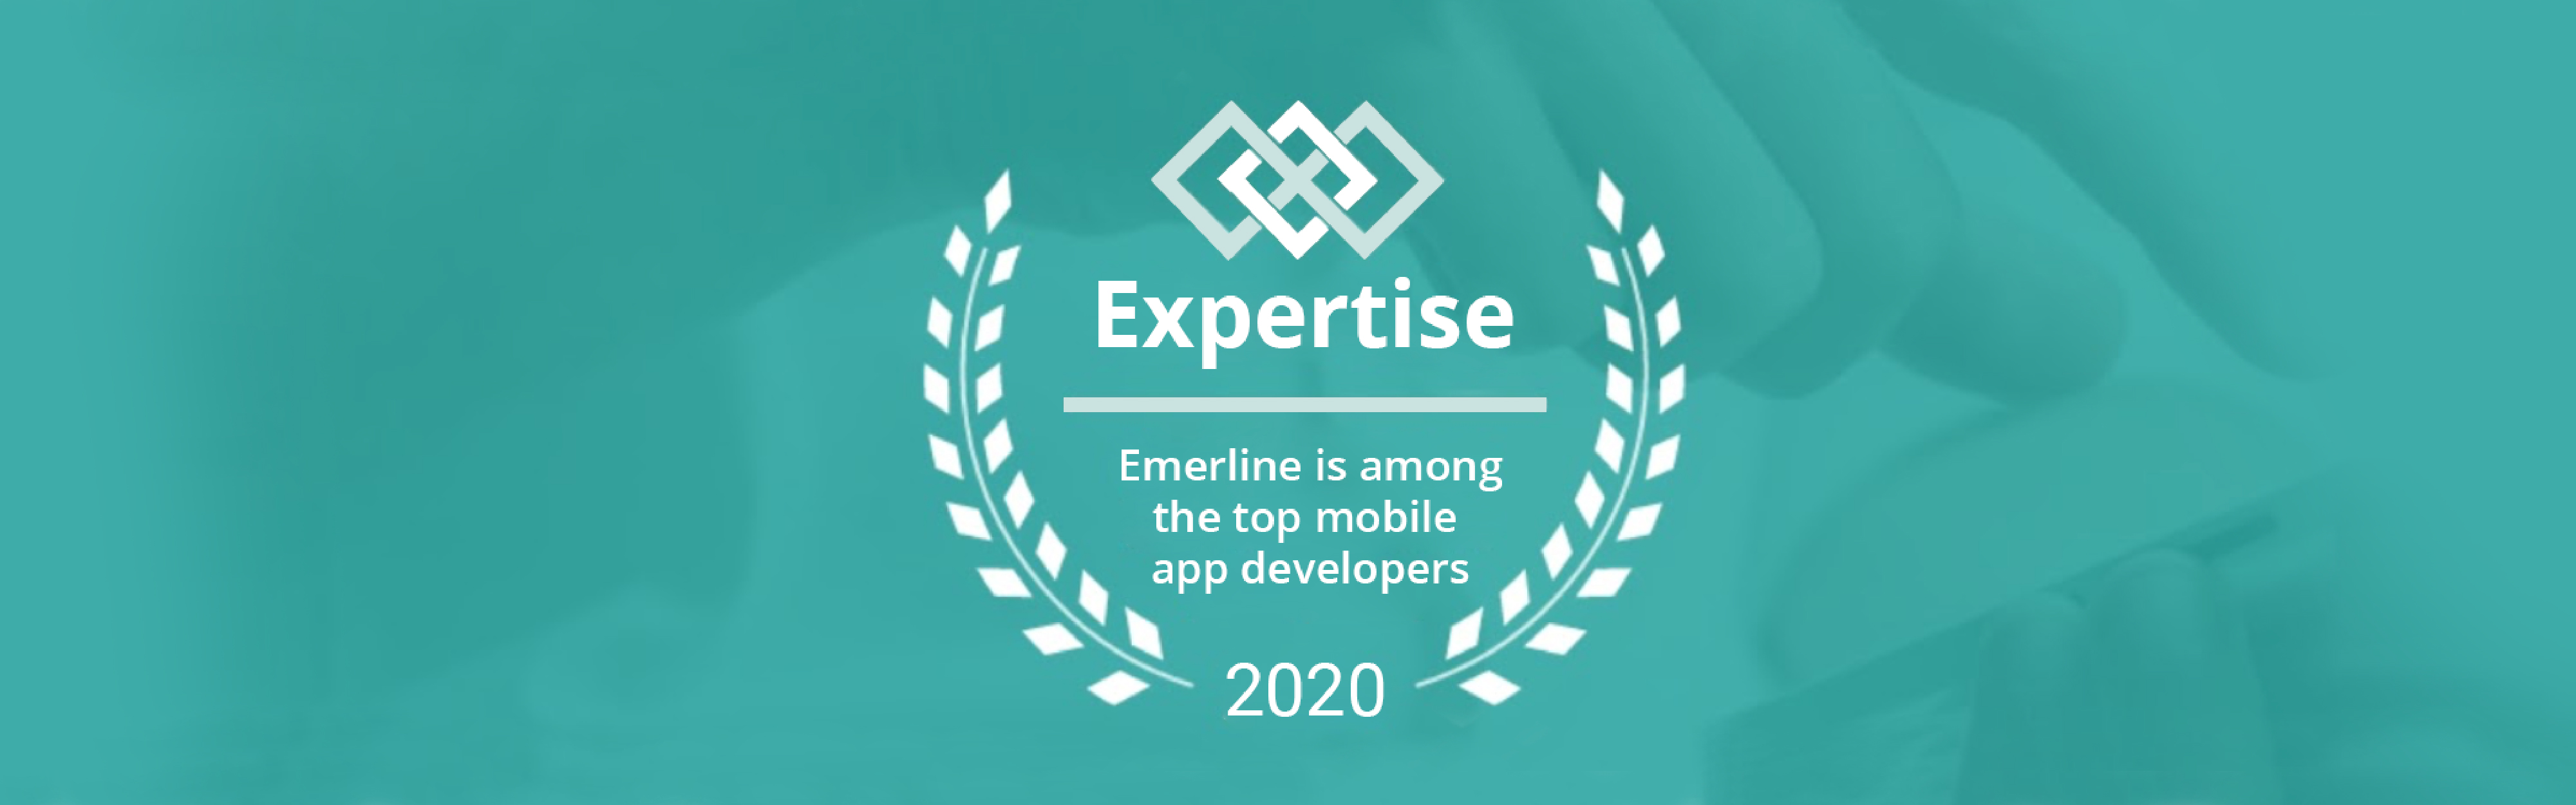 Emerline Enters Top 20 Mobile App Developers According to the US Independent Research Organization